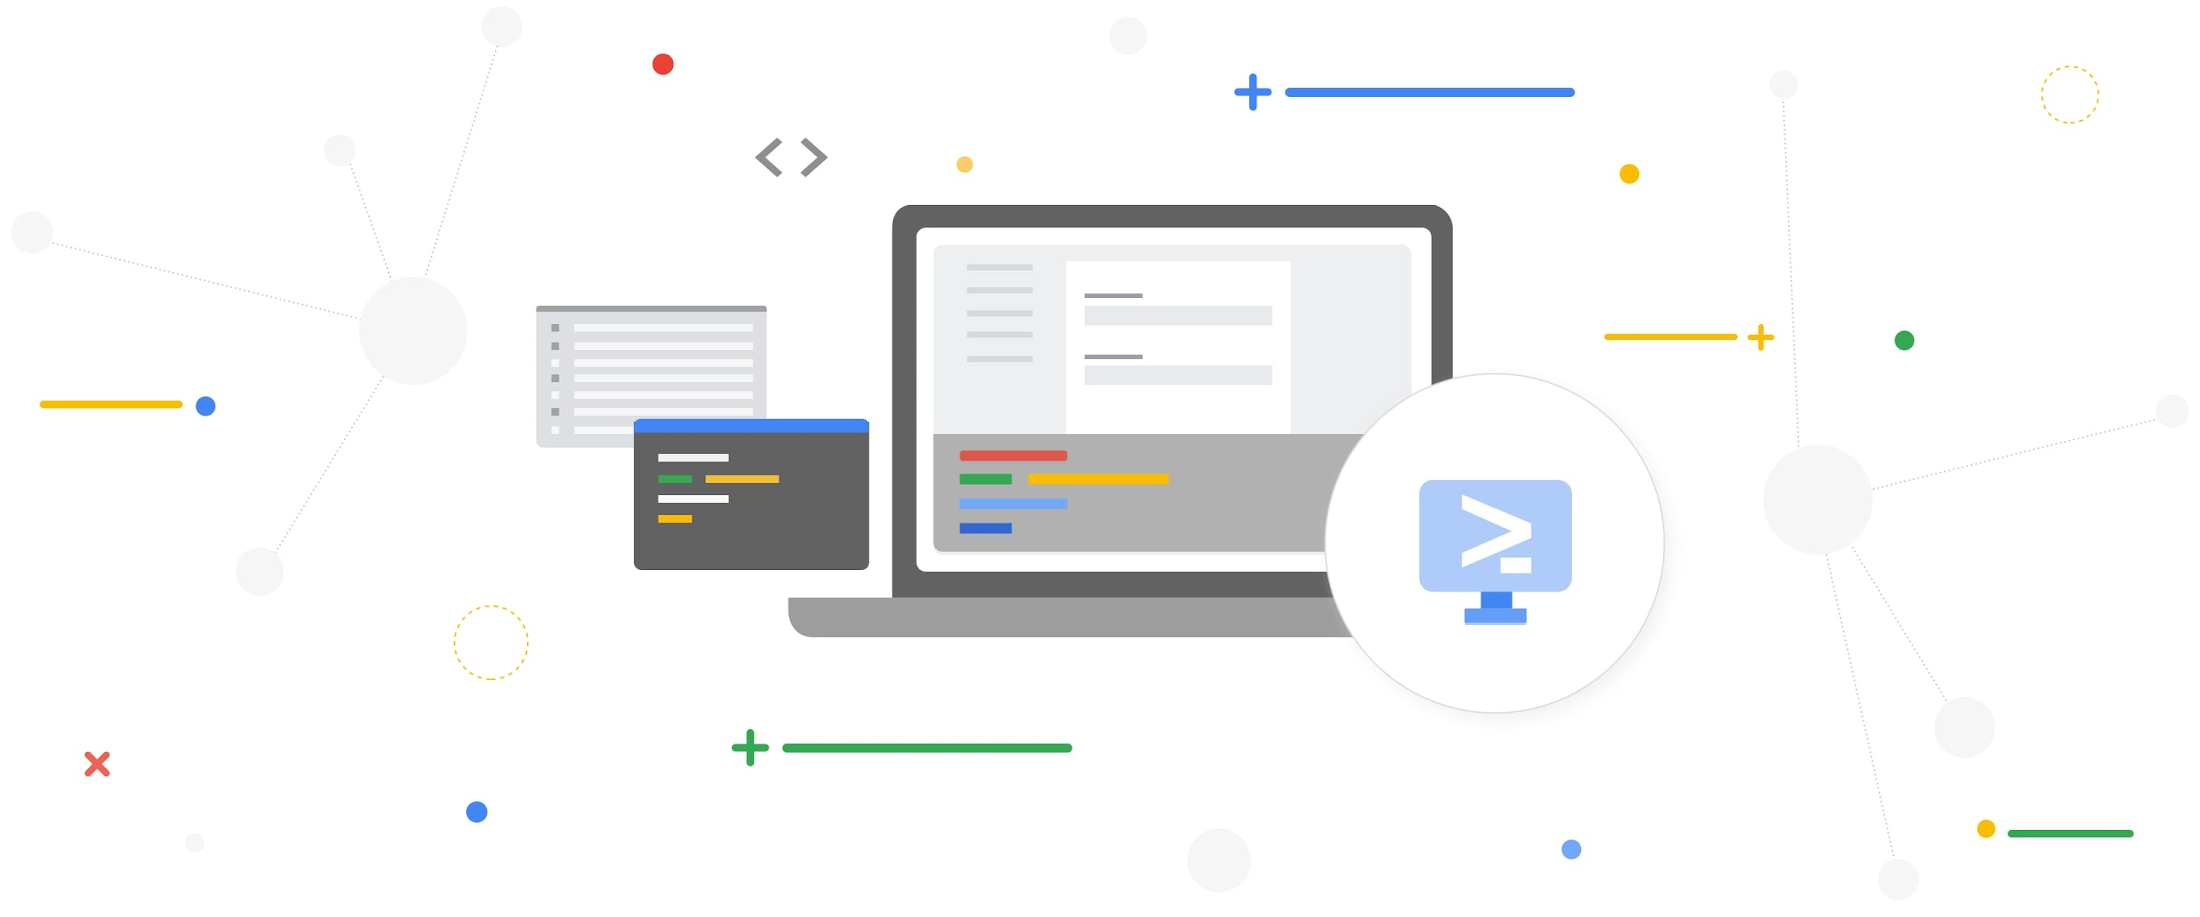 We're excited to announce a new documentation feature that lets you run code samples in Cloud Shell, without leaving the page. Sign in to your Googl